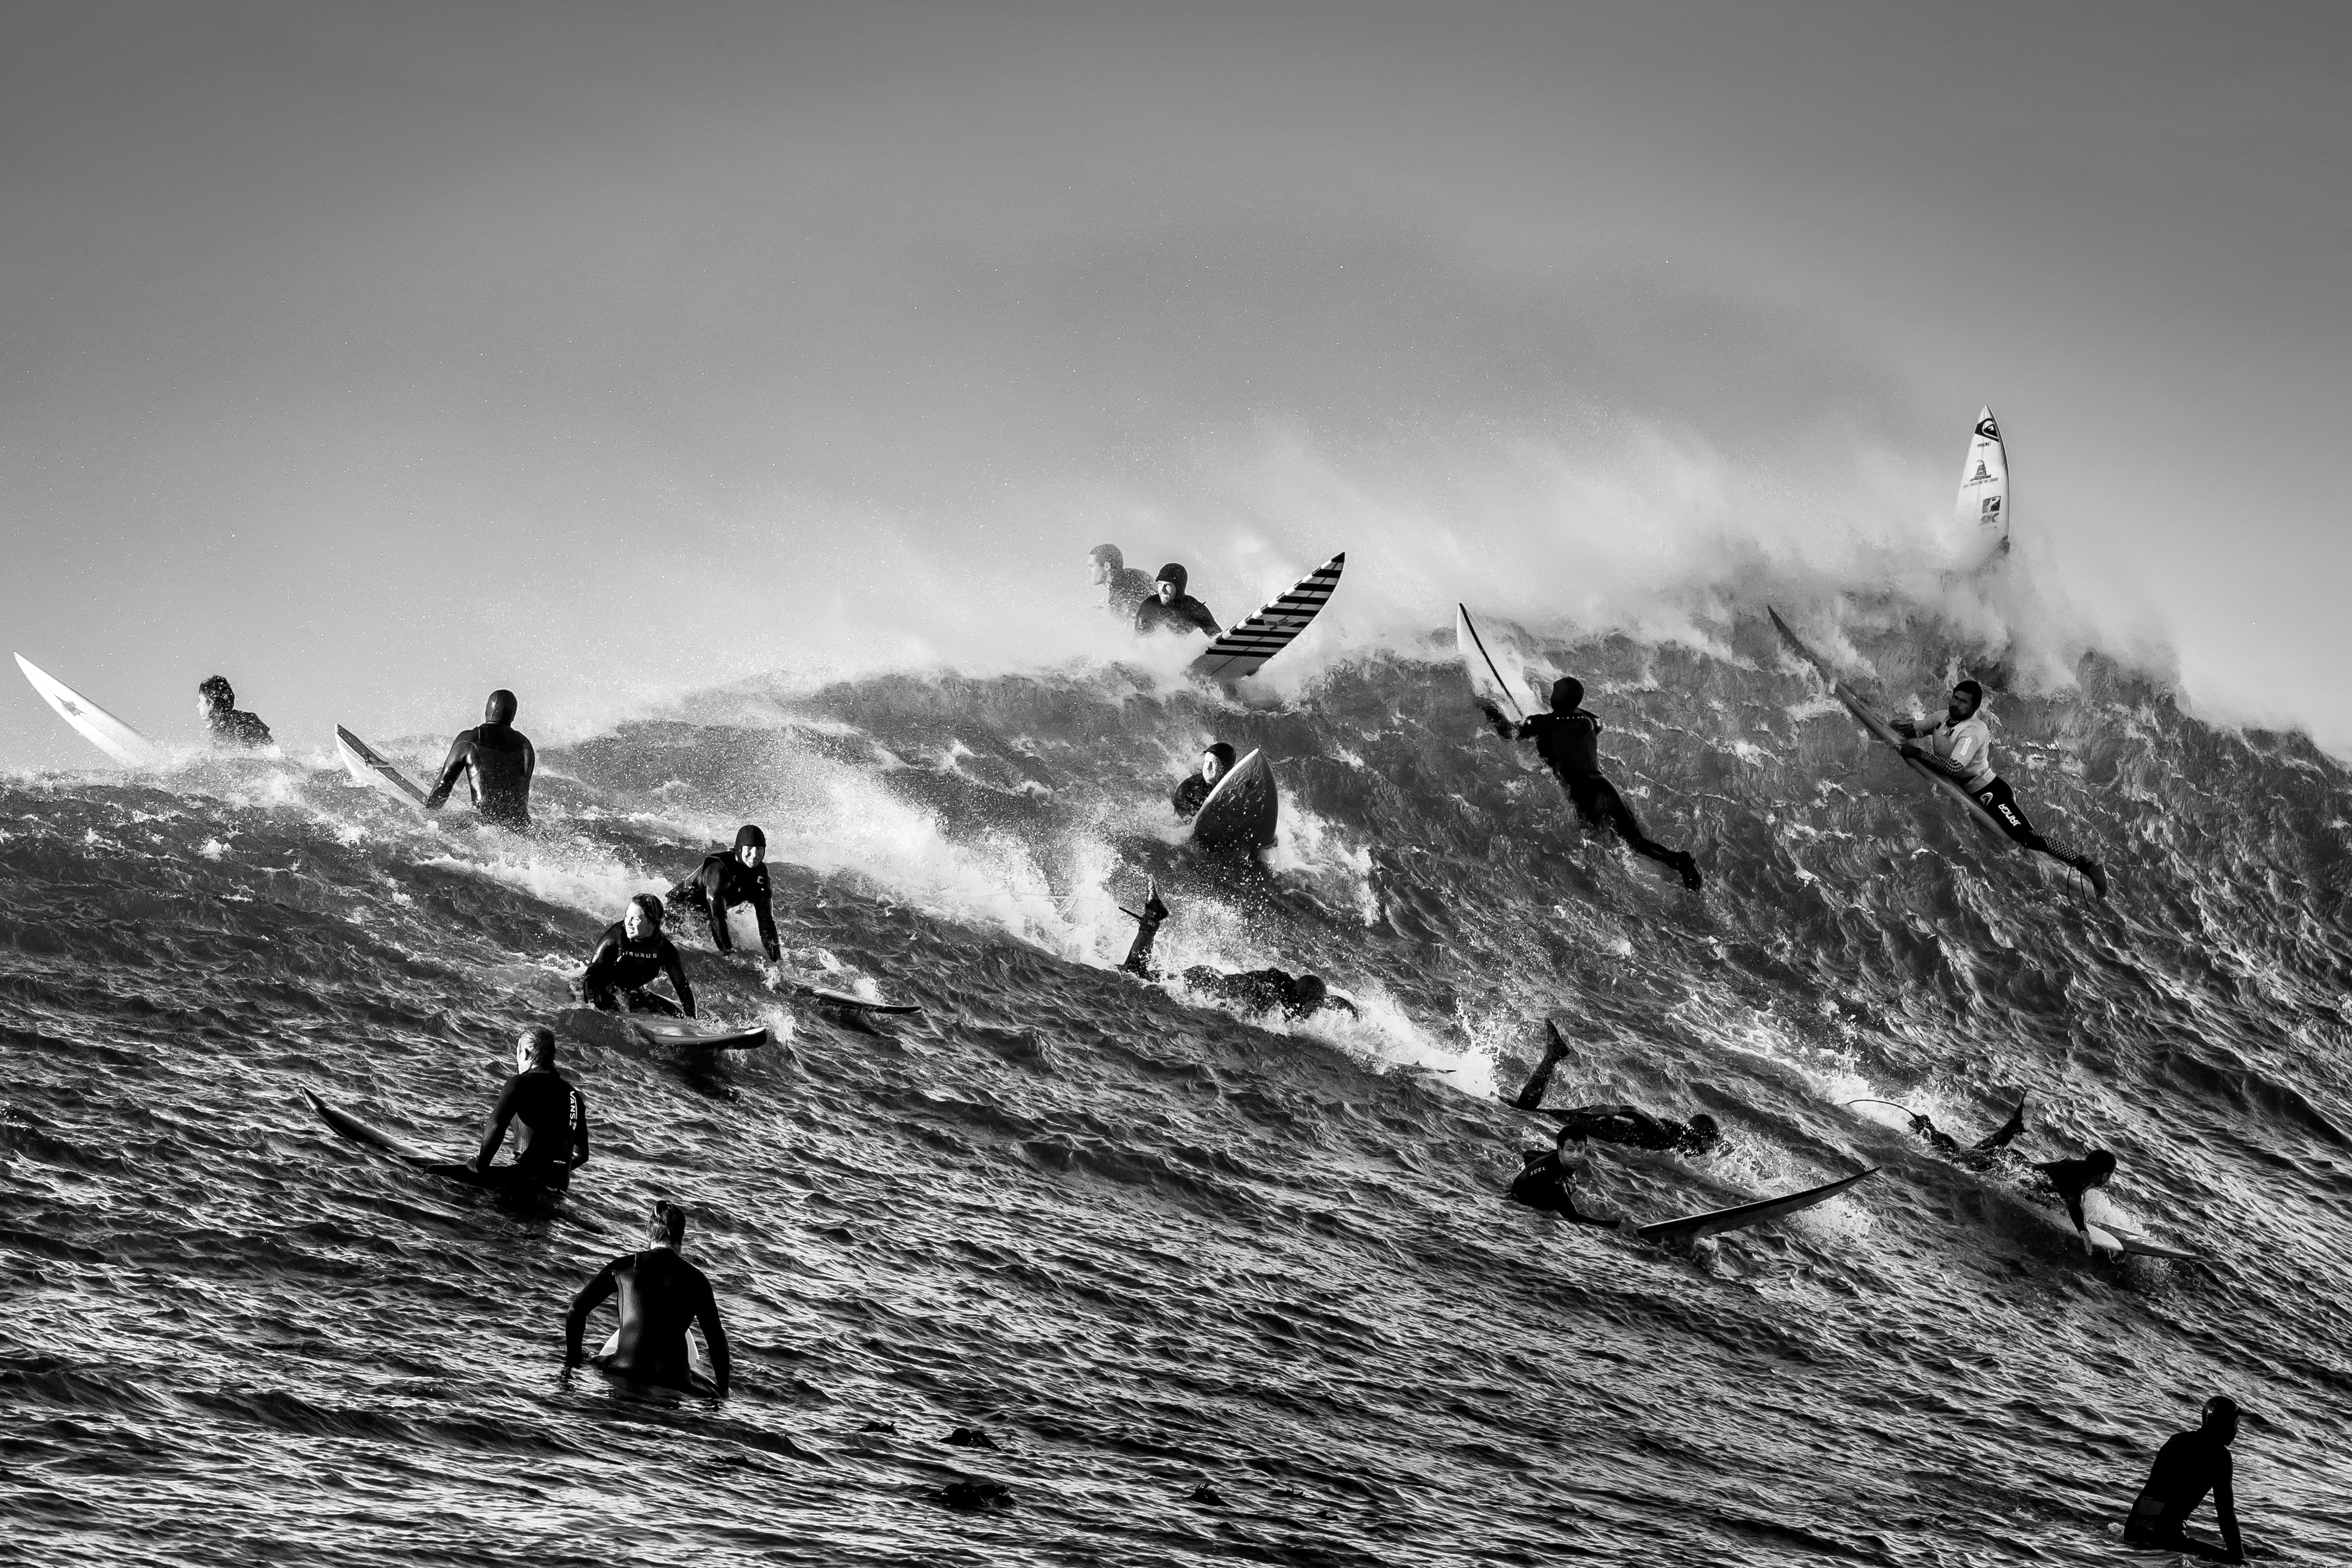 A black-and-white photograph of many surfers in the ocean, scattered at various spots along a gathering wave.